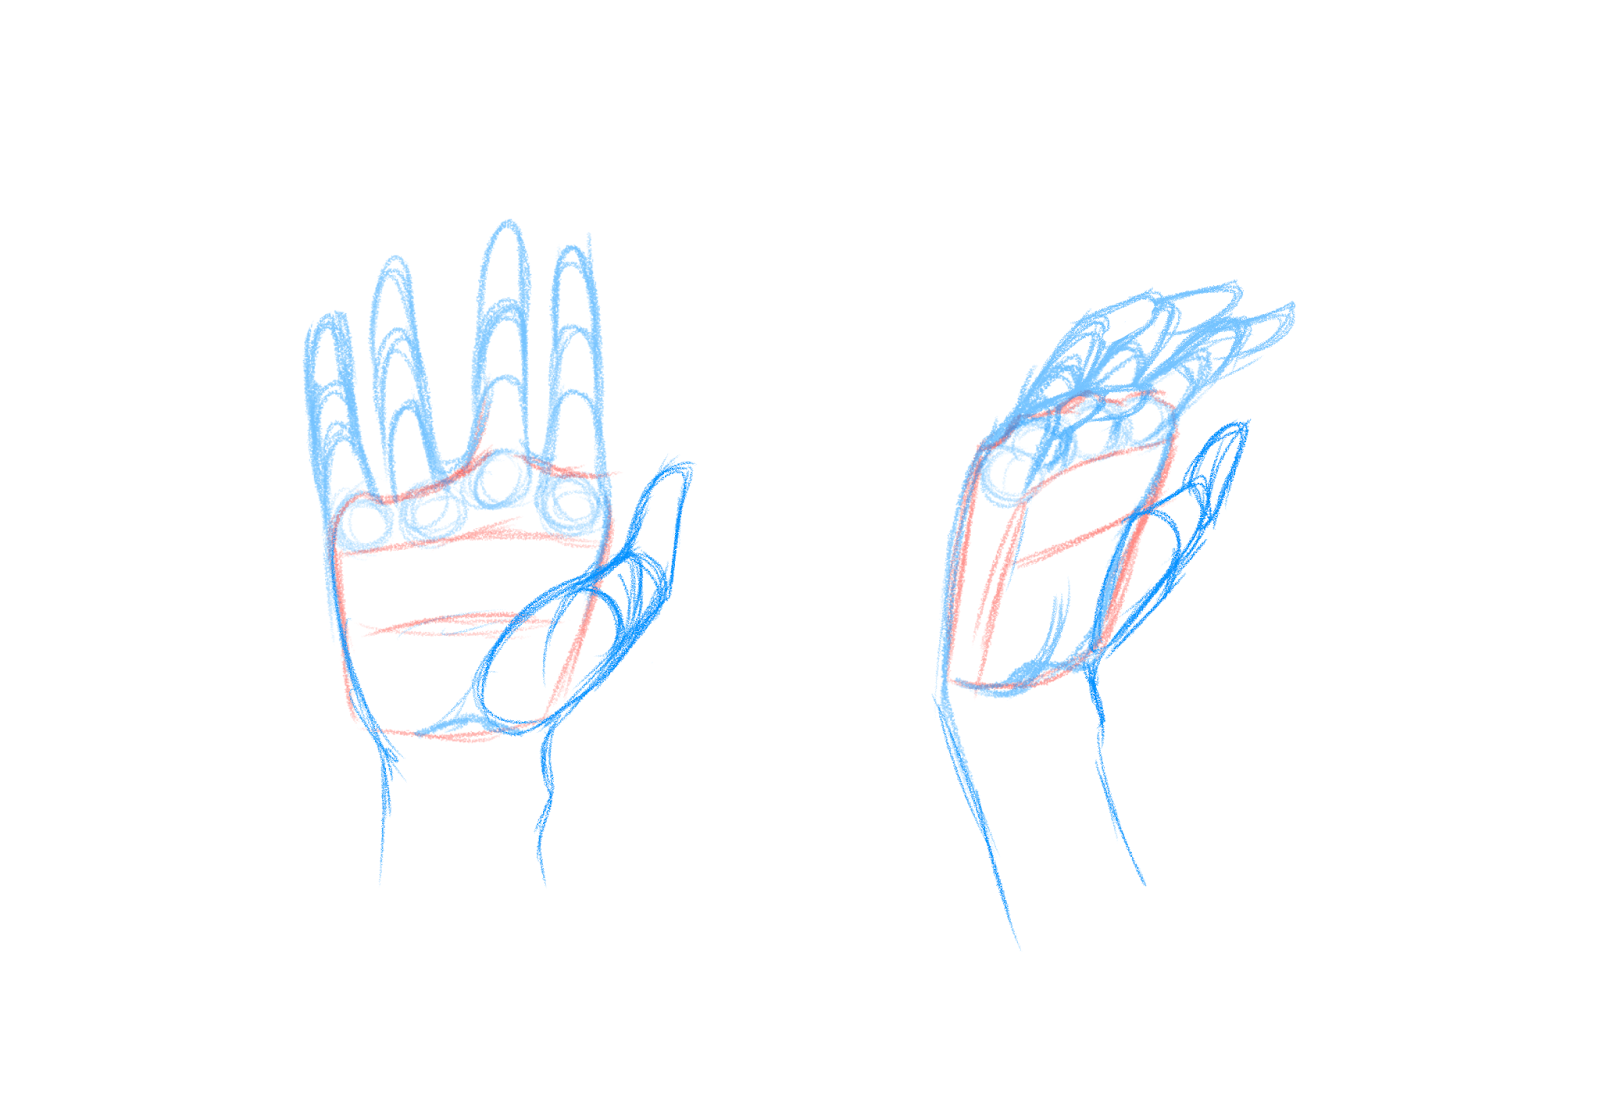 Relaxed Hand Drawing The Hands as Relaxed as